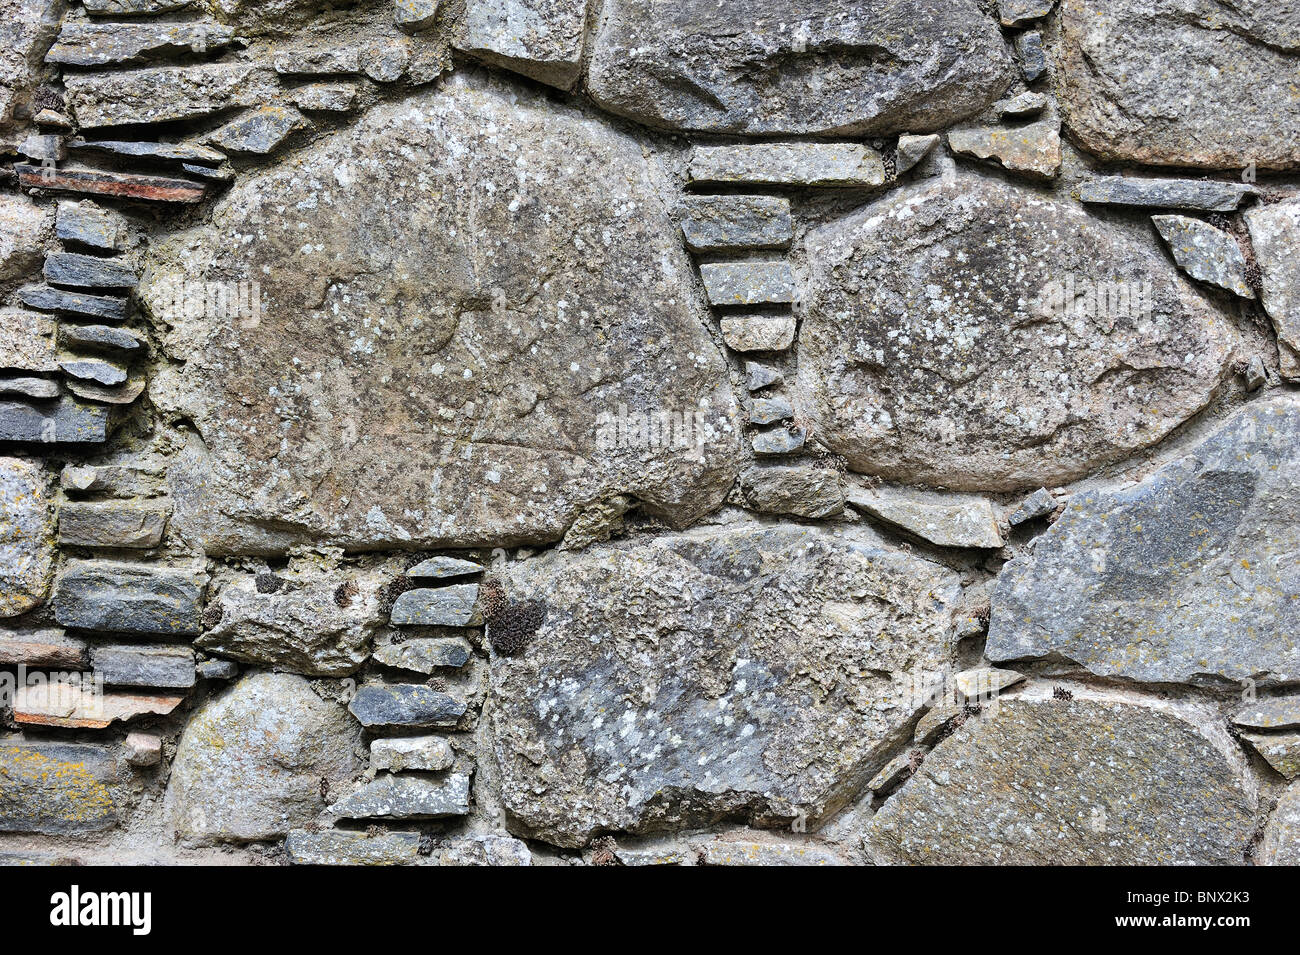 Detail of masonry in the ruins of Ruthven barracks, built in 1719 after the 1715 Jacobite rising, near Kingussie - Stock Image